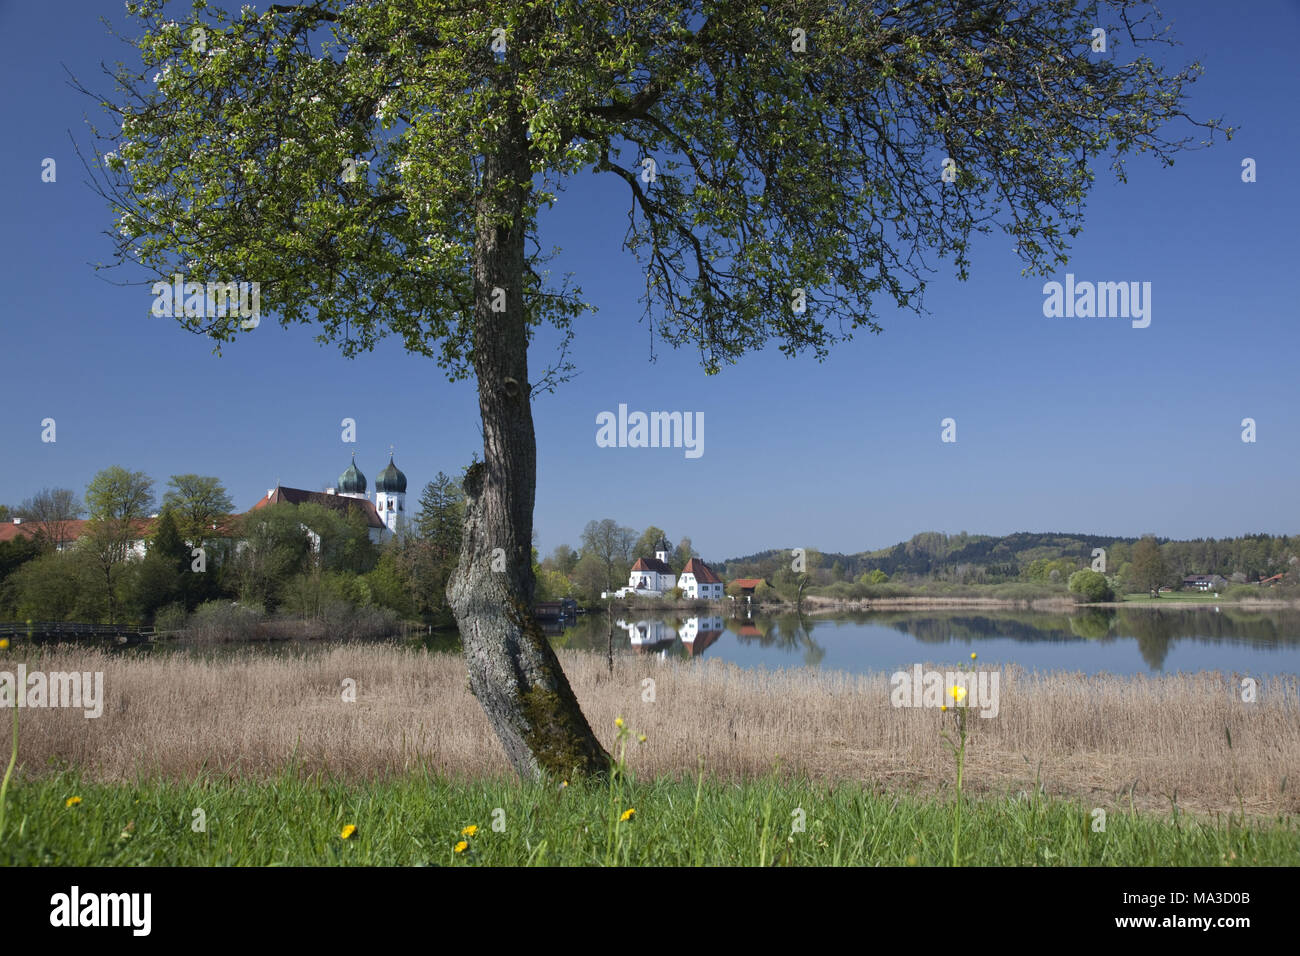 abbey of Seeon in the abbey lake, Seeon-Seebruck, Chiemgau, Upper Bavaria, Bavaria, South Germany, Germany, - Stock Image